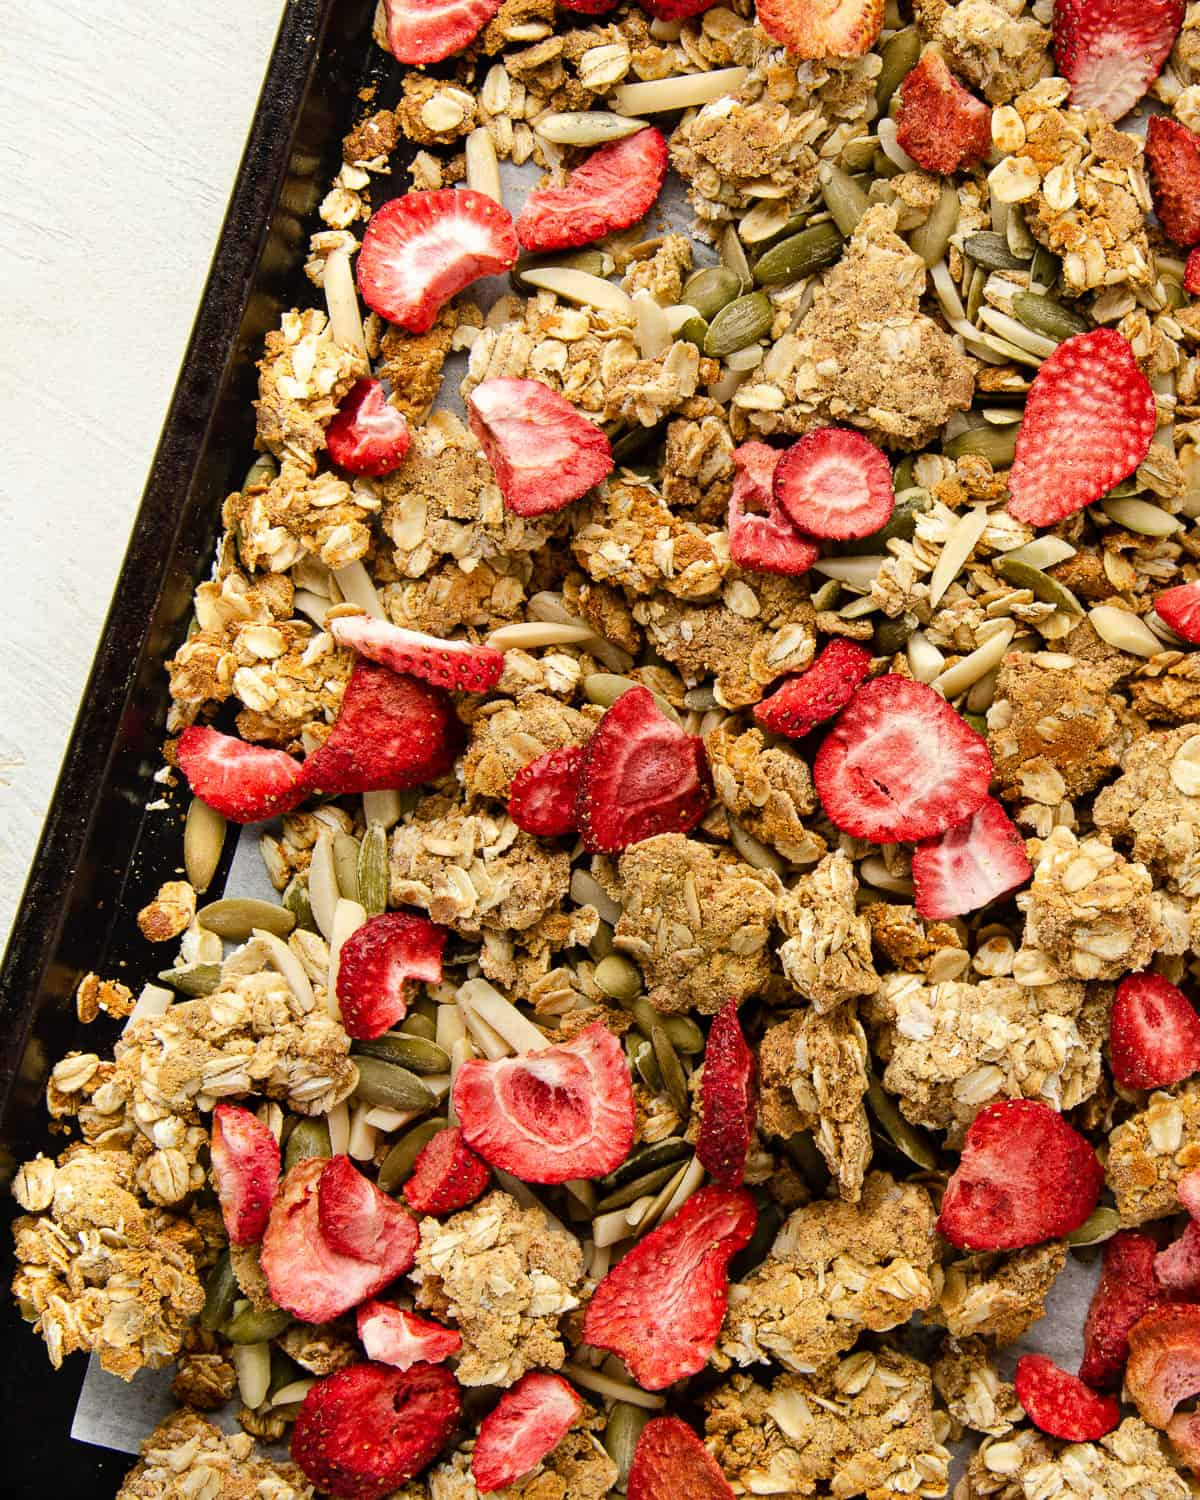 Final view of protein granola crumbles with mix-in's on a baking sheet.